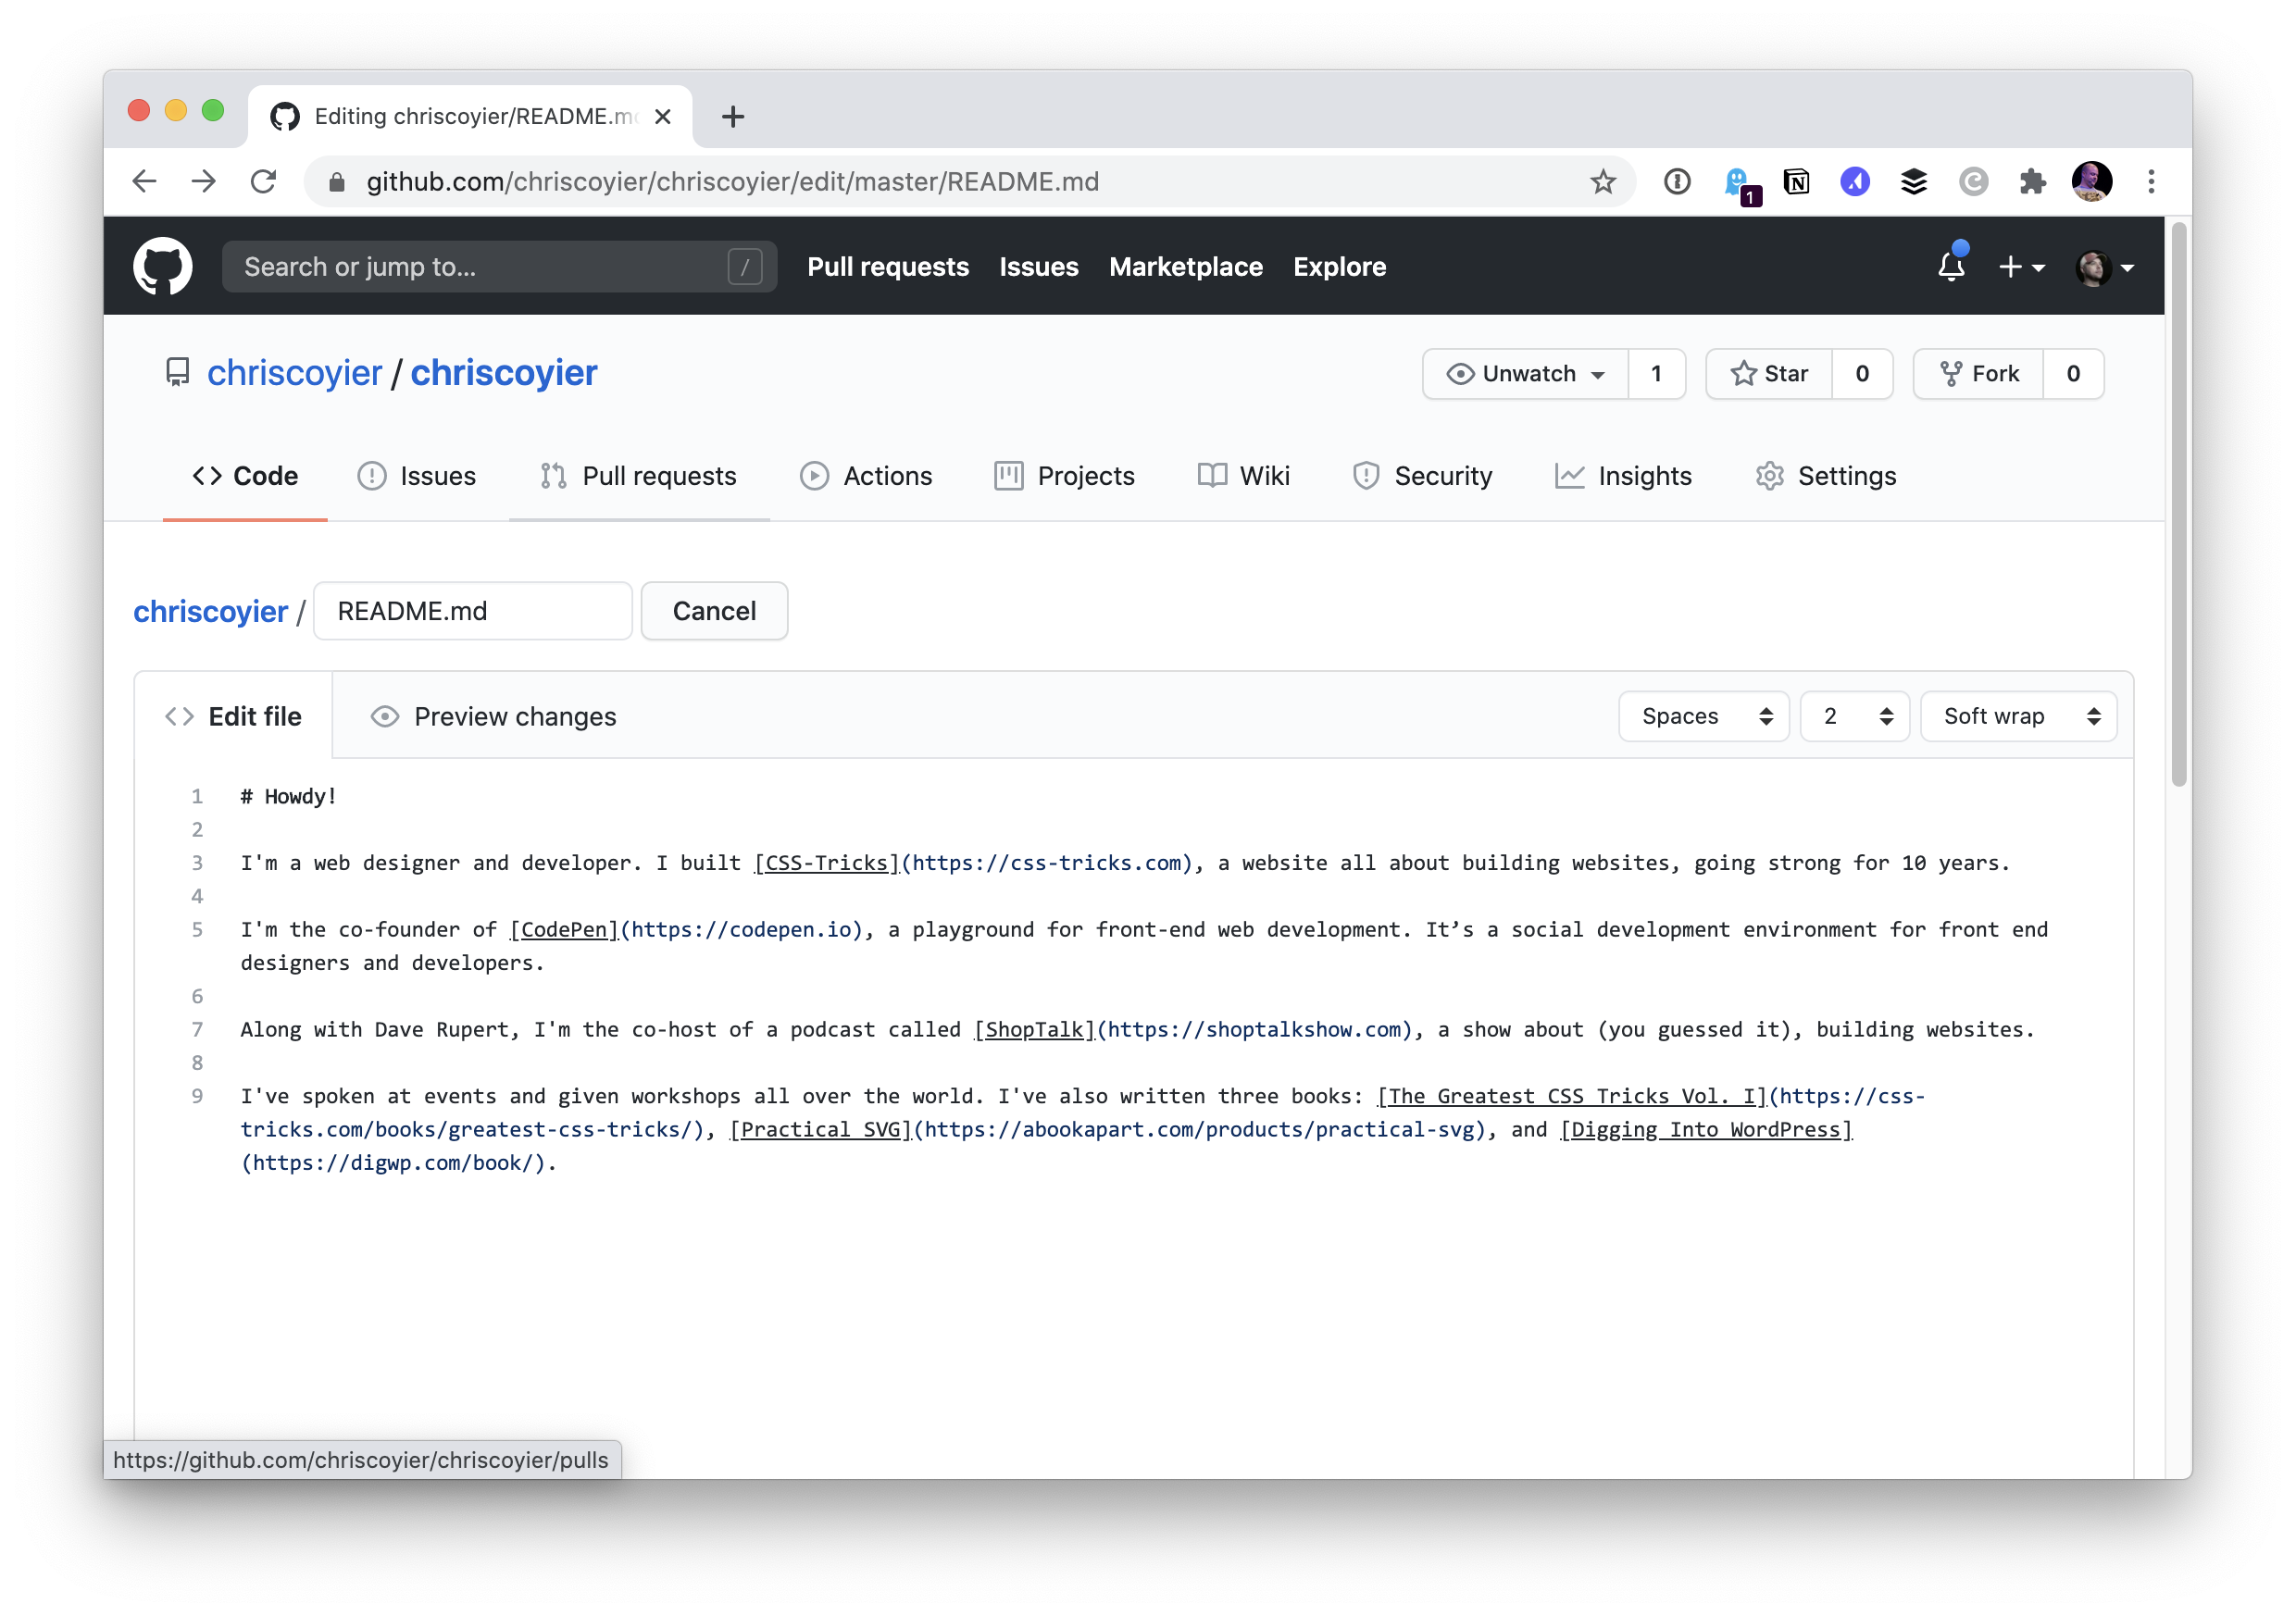 Screenshot showing the Markdown code from the personal website in the GitHub editor.